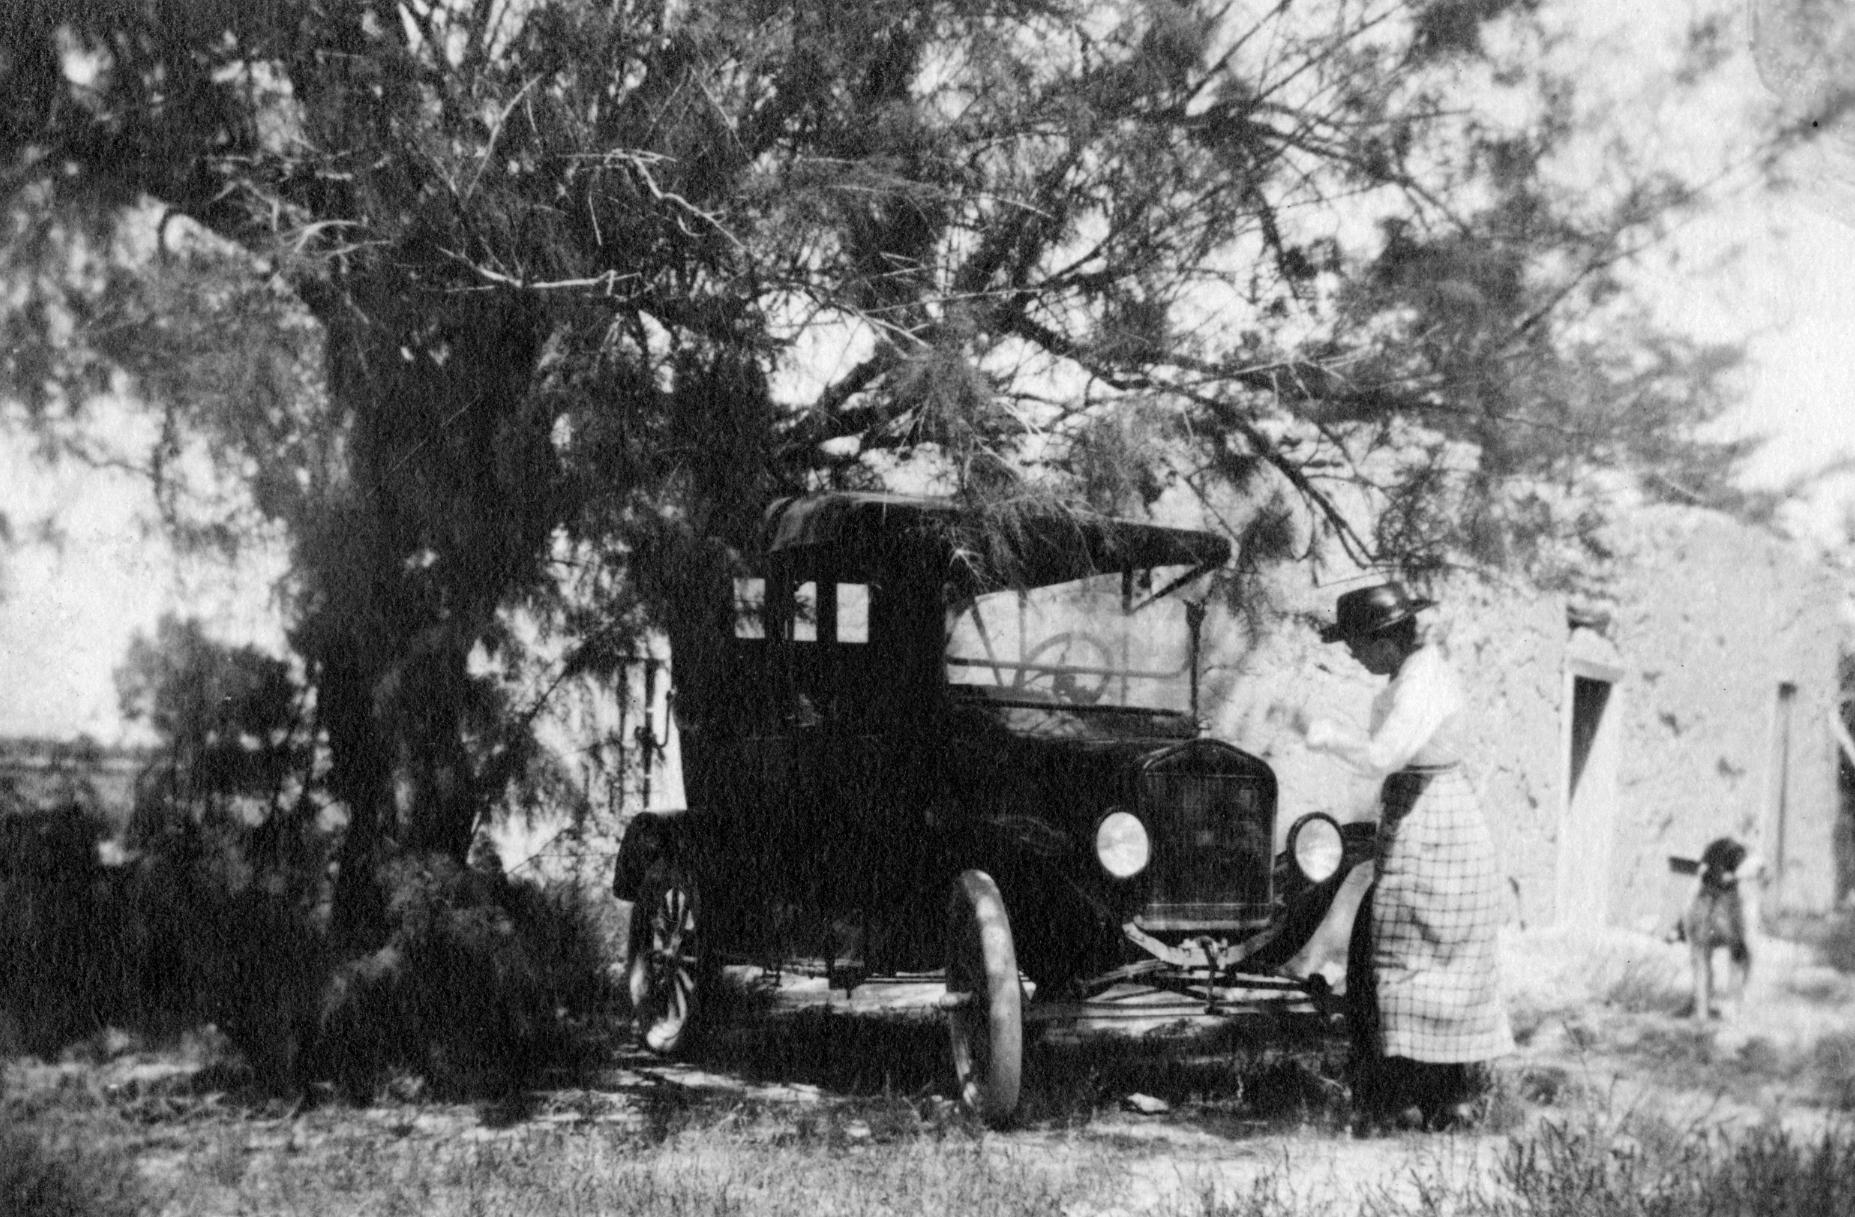 Gros-Oma with Aldo's Model T Ford